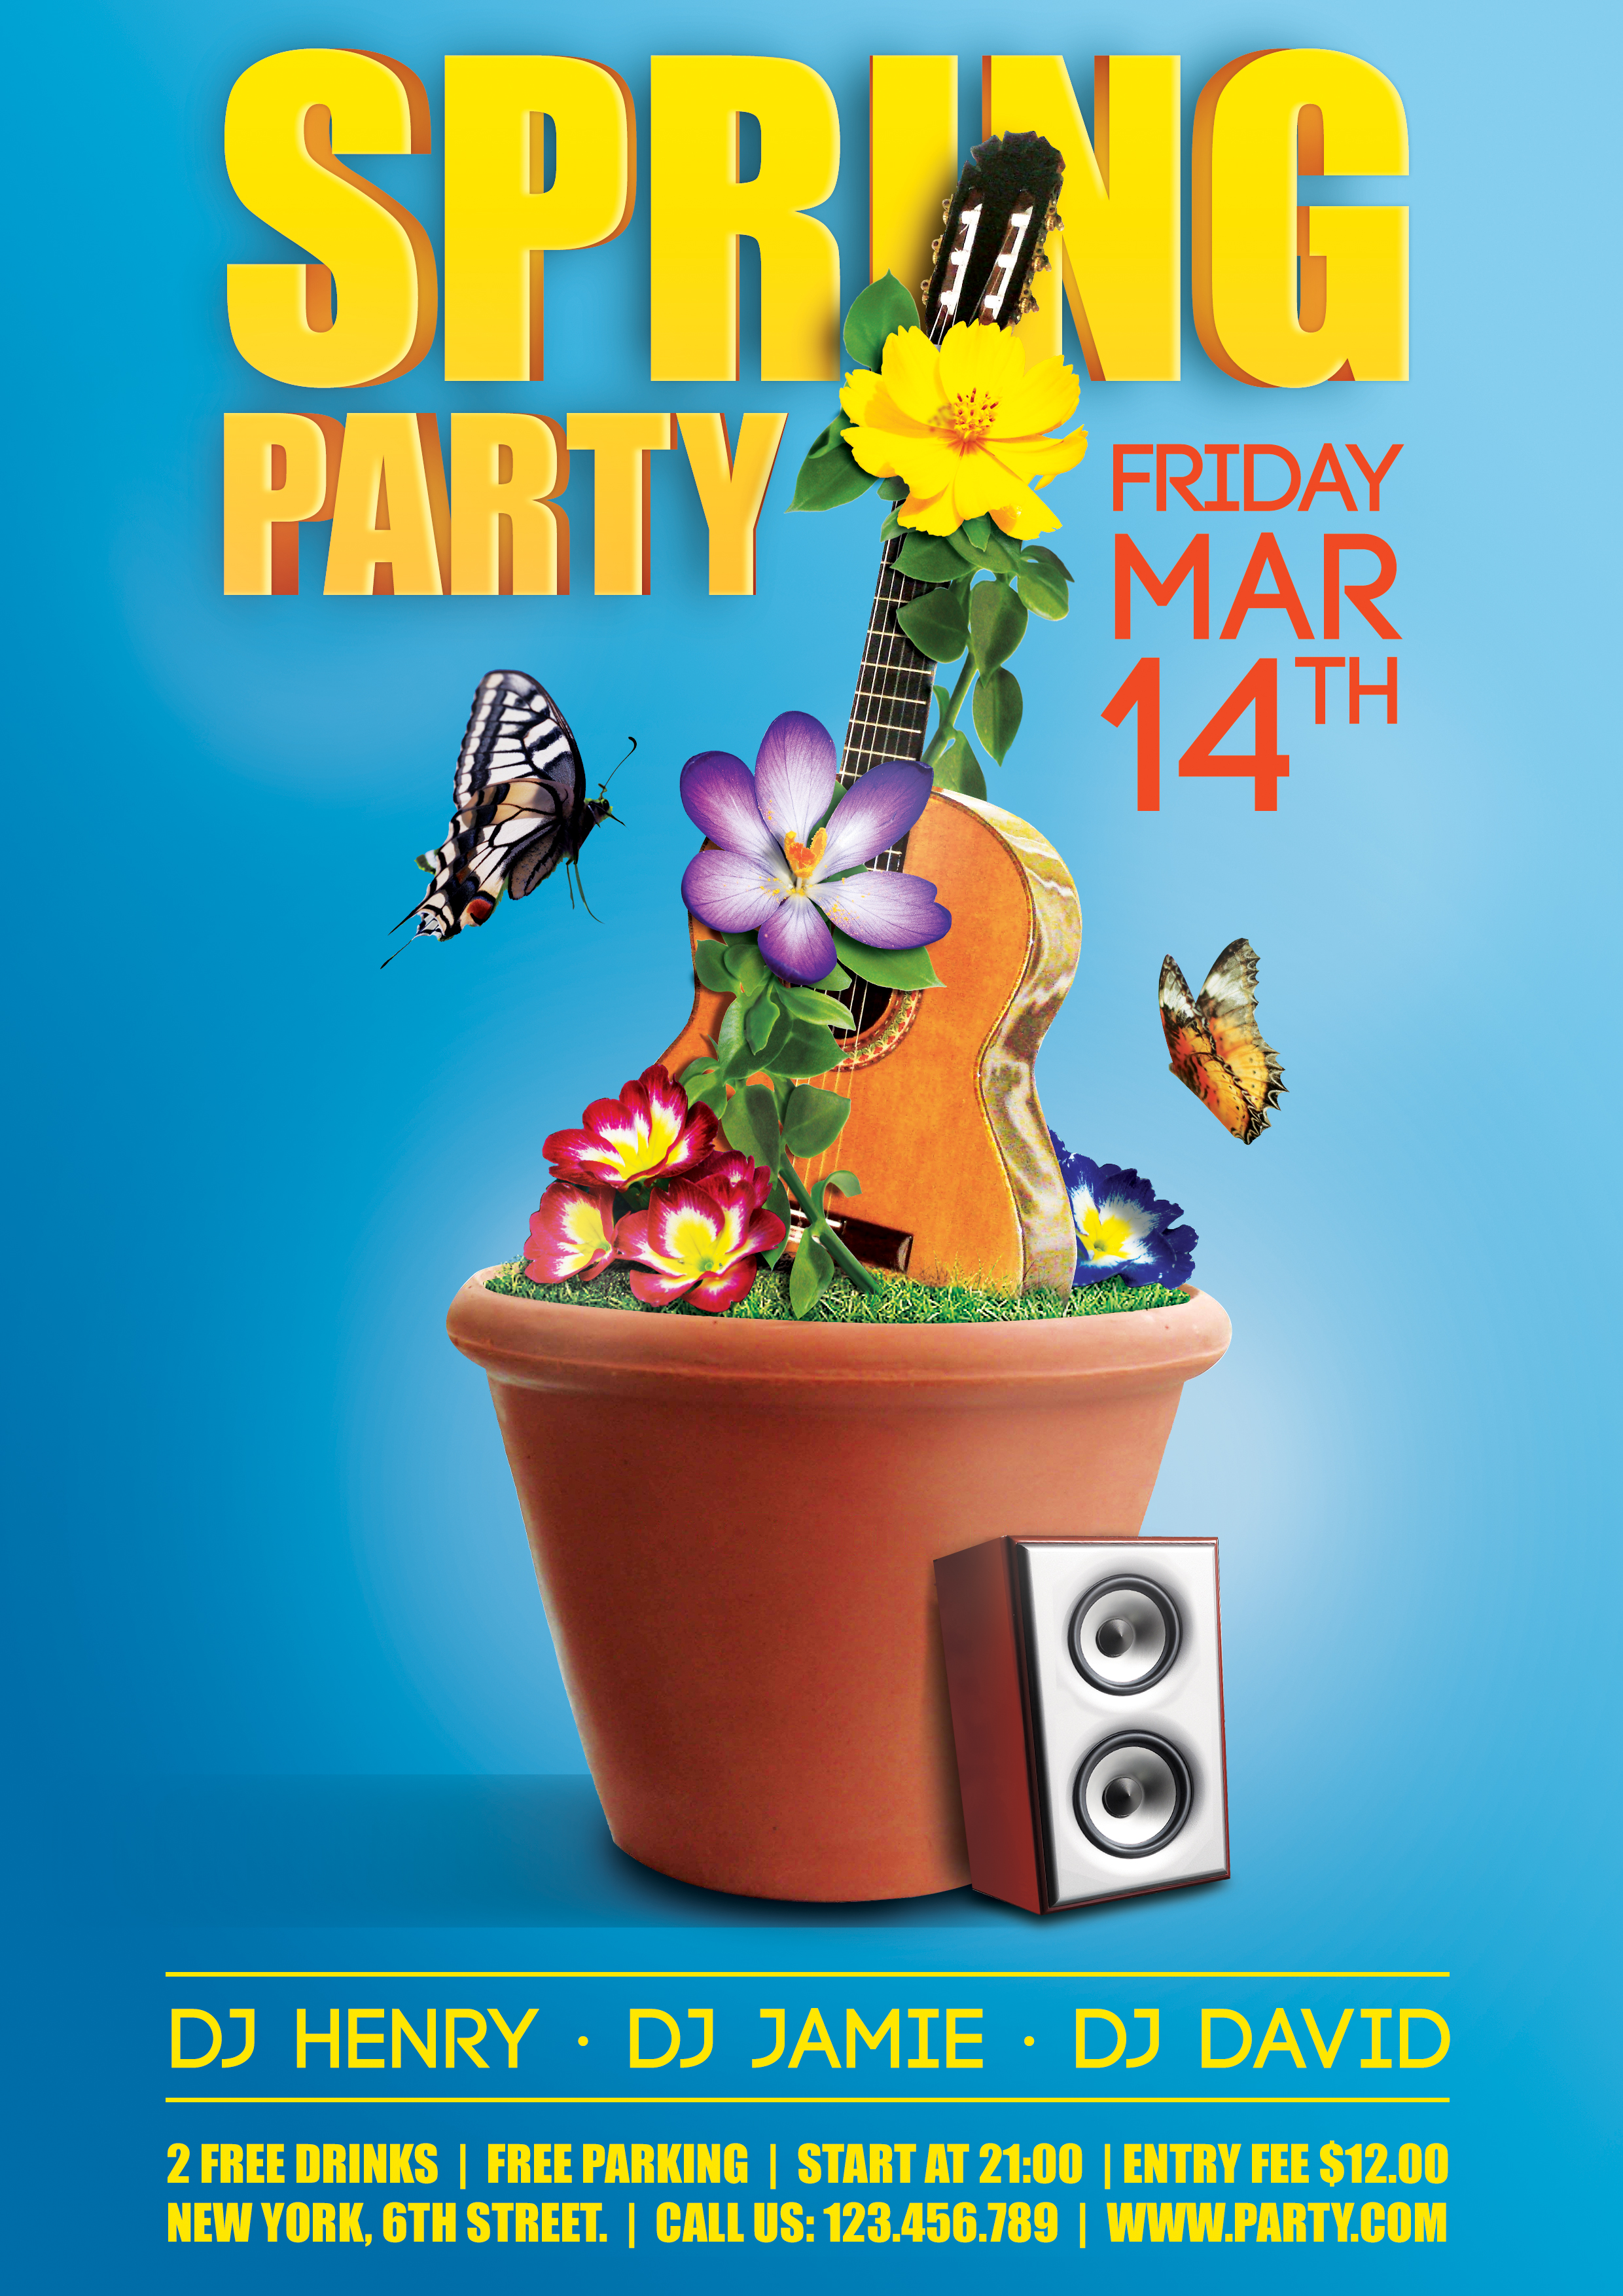 spring party flyer by Henry Hu